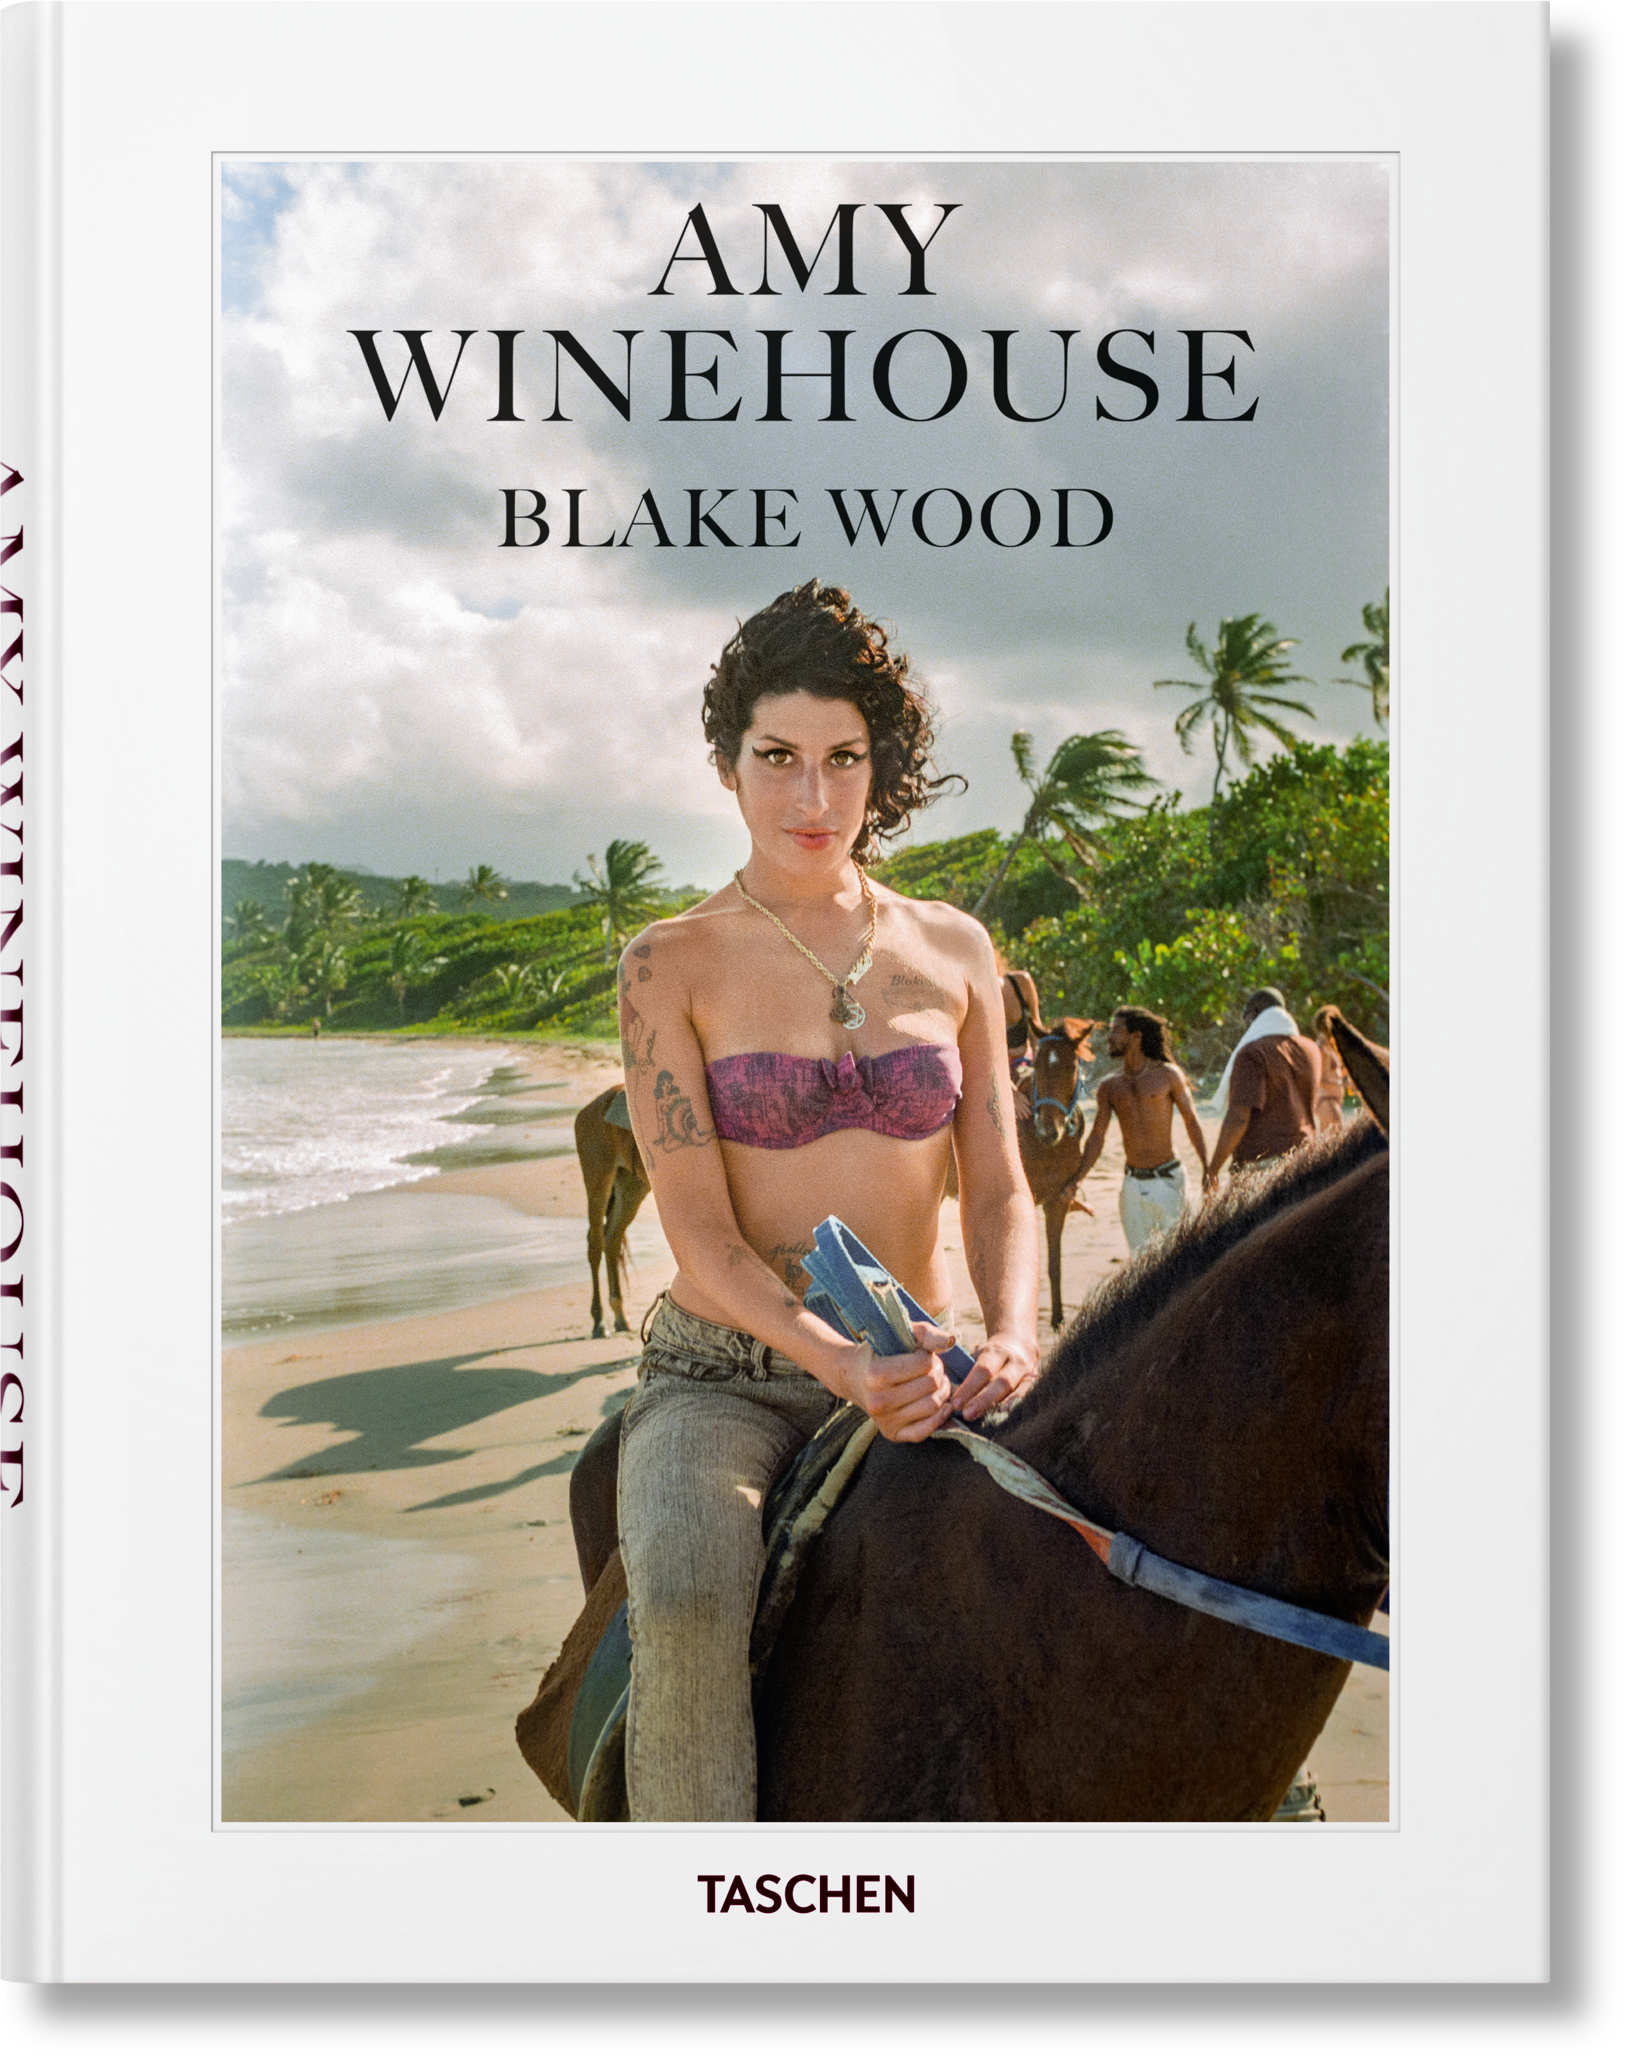 blake_wood_amy_winehouse_fo_int_3d_05332_1807091648_id_1202402.png